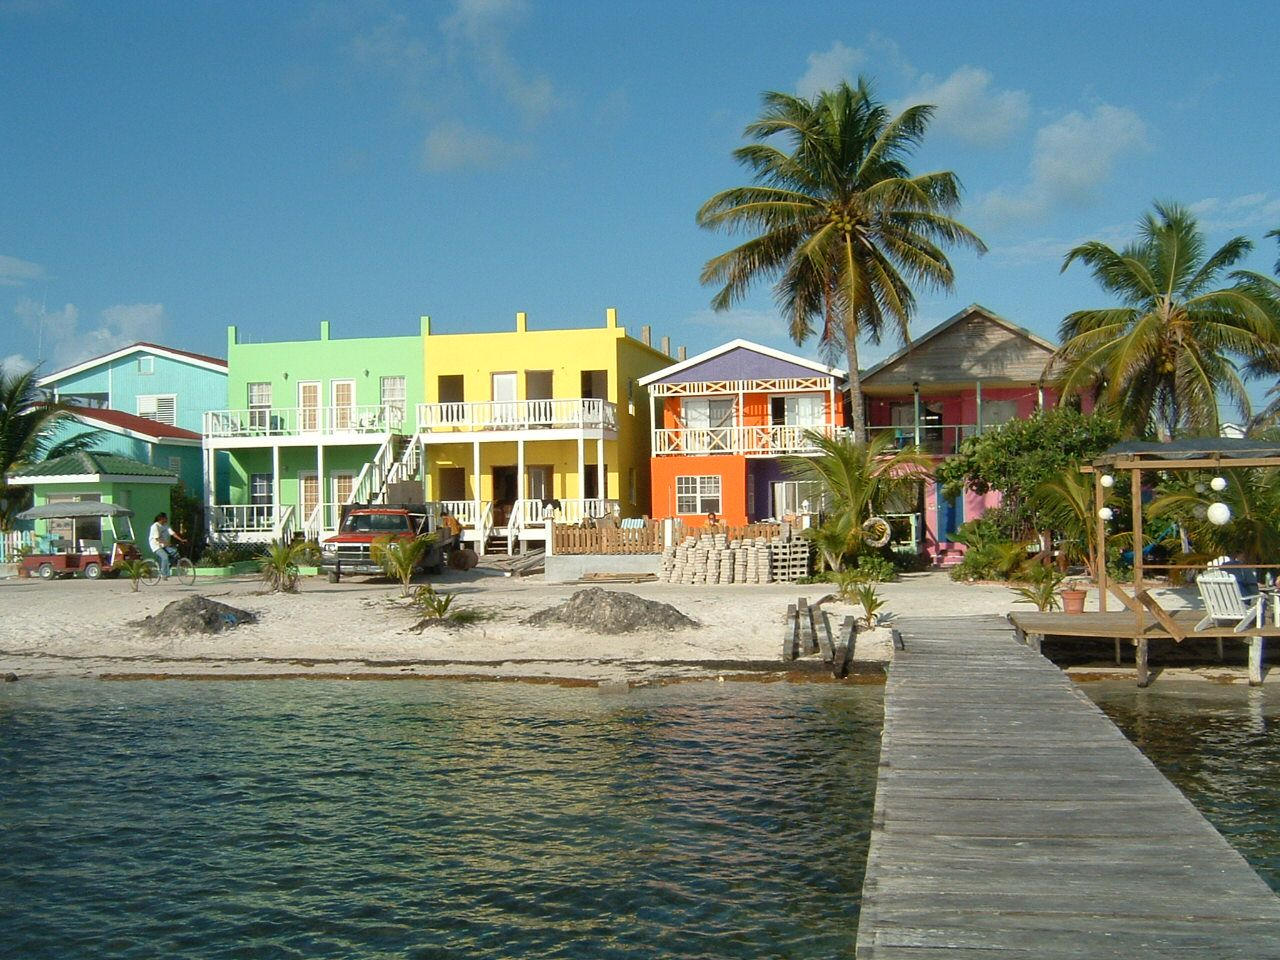 Caye Caulker Belize Stopped Here Many Times On Cruises But Next Time Need